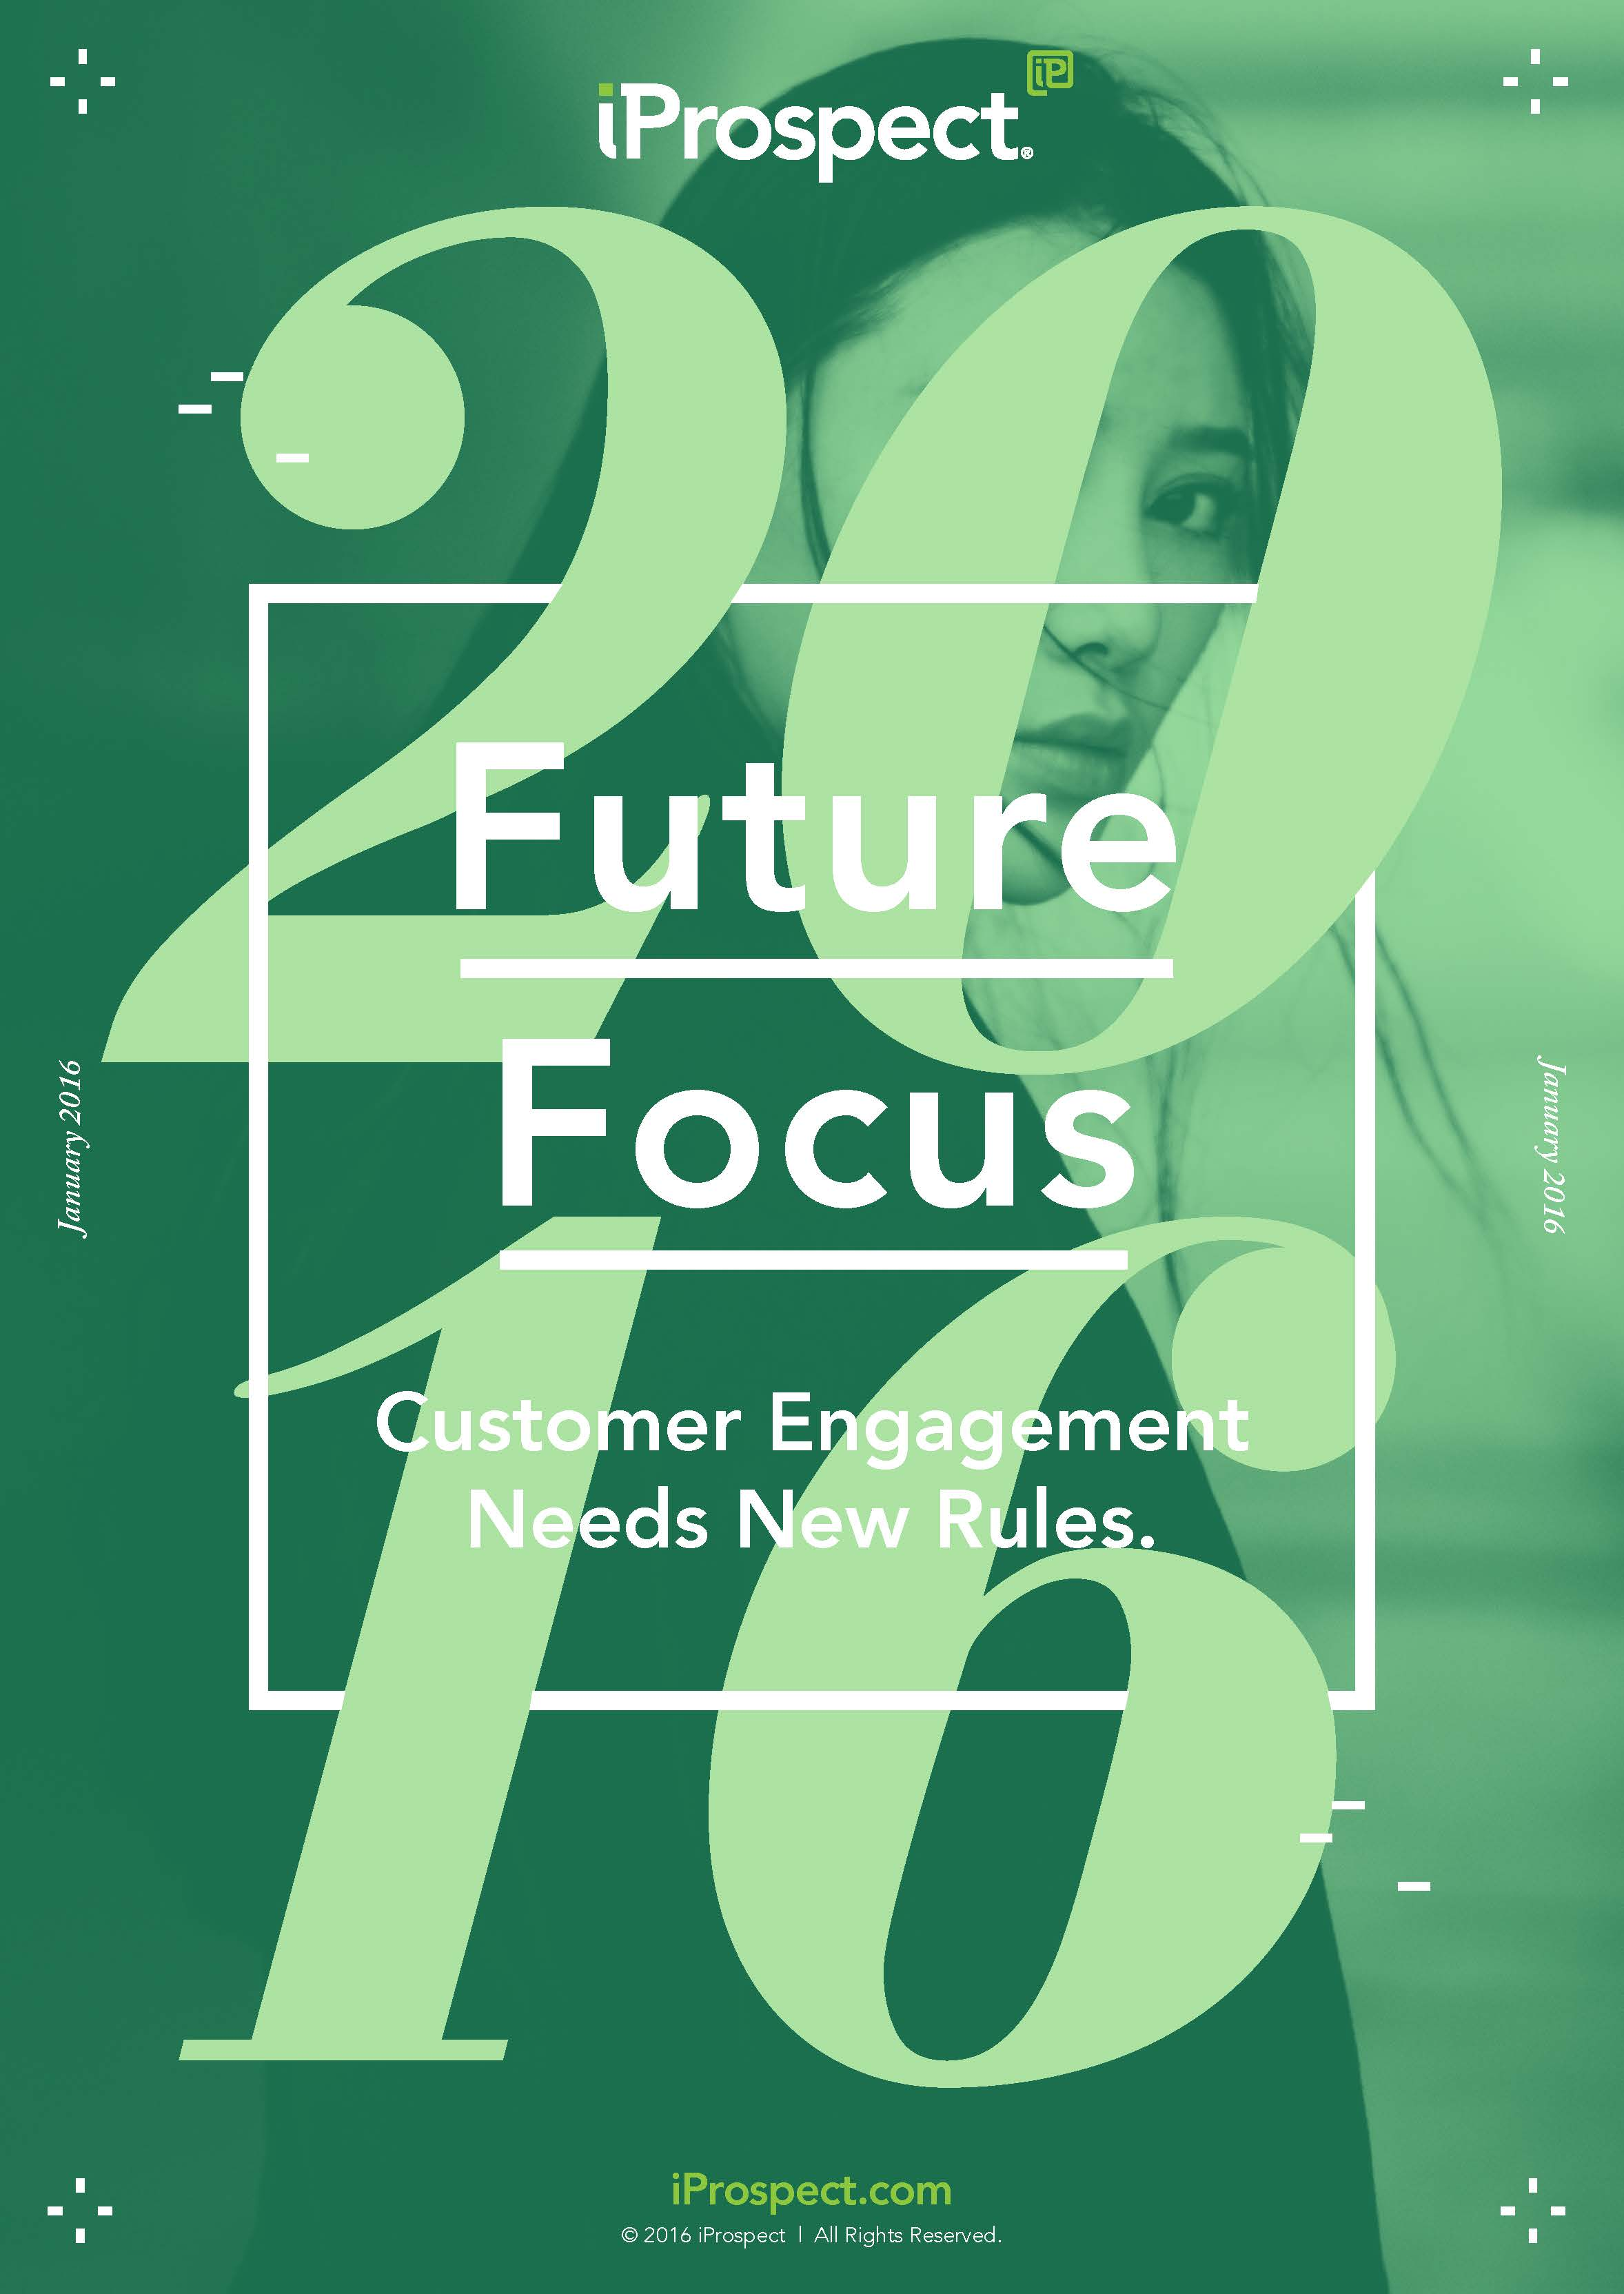 Customer Engagement Needs